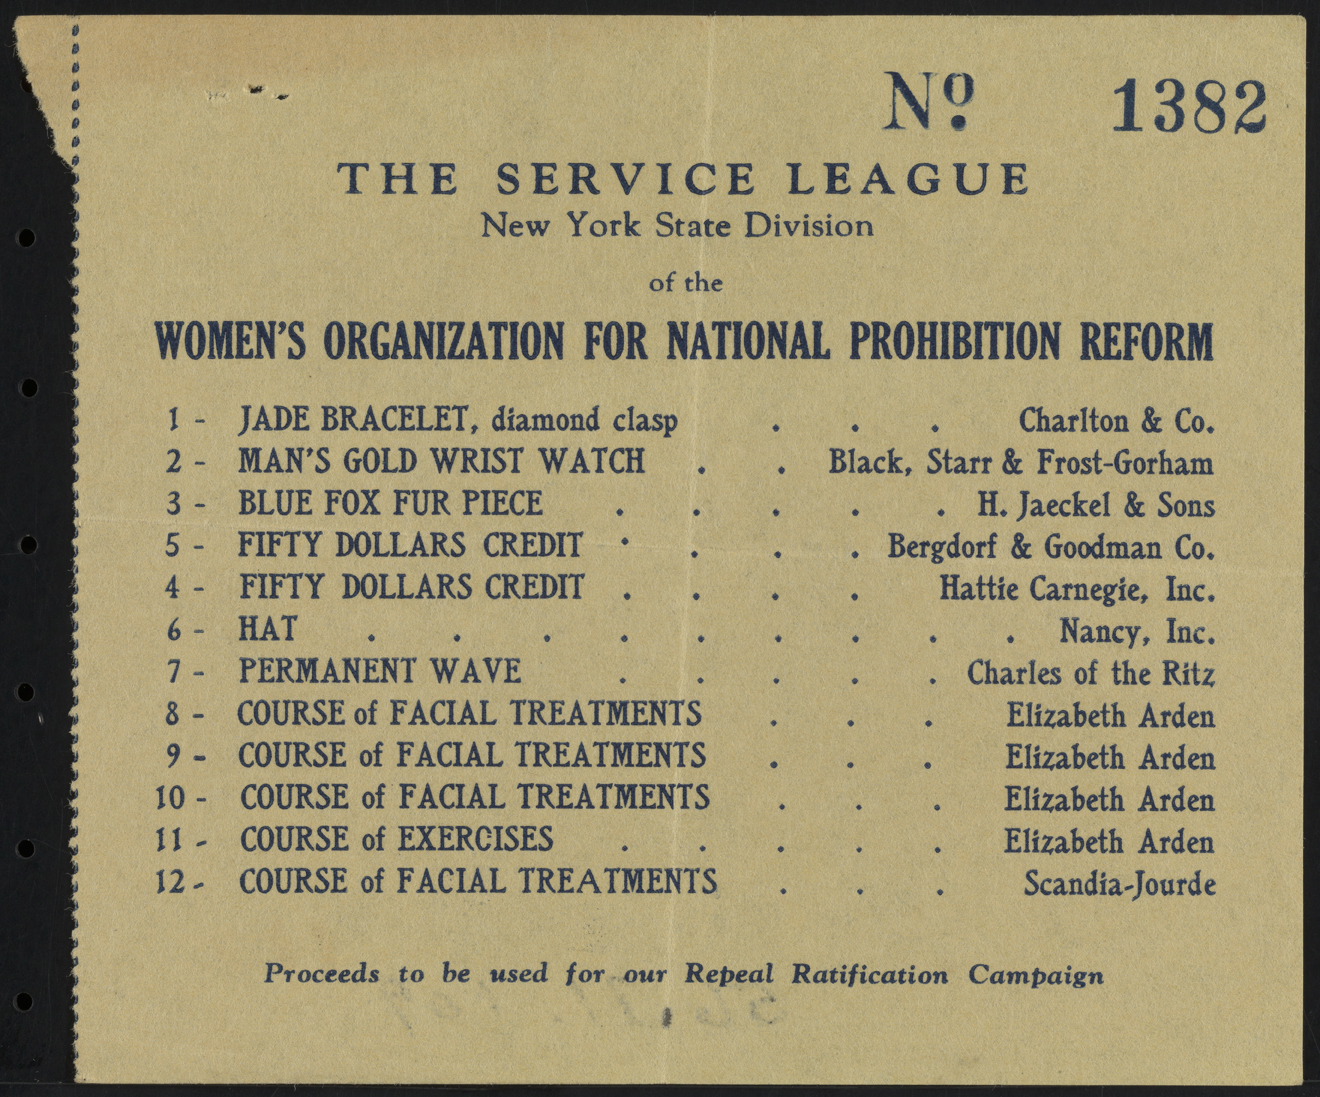 Ticket Stub, The Service League, New York State Division of the Women's Organization for National Prohibition Reform